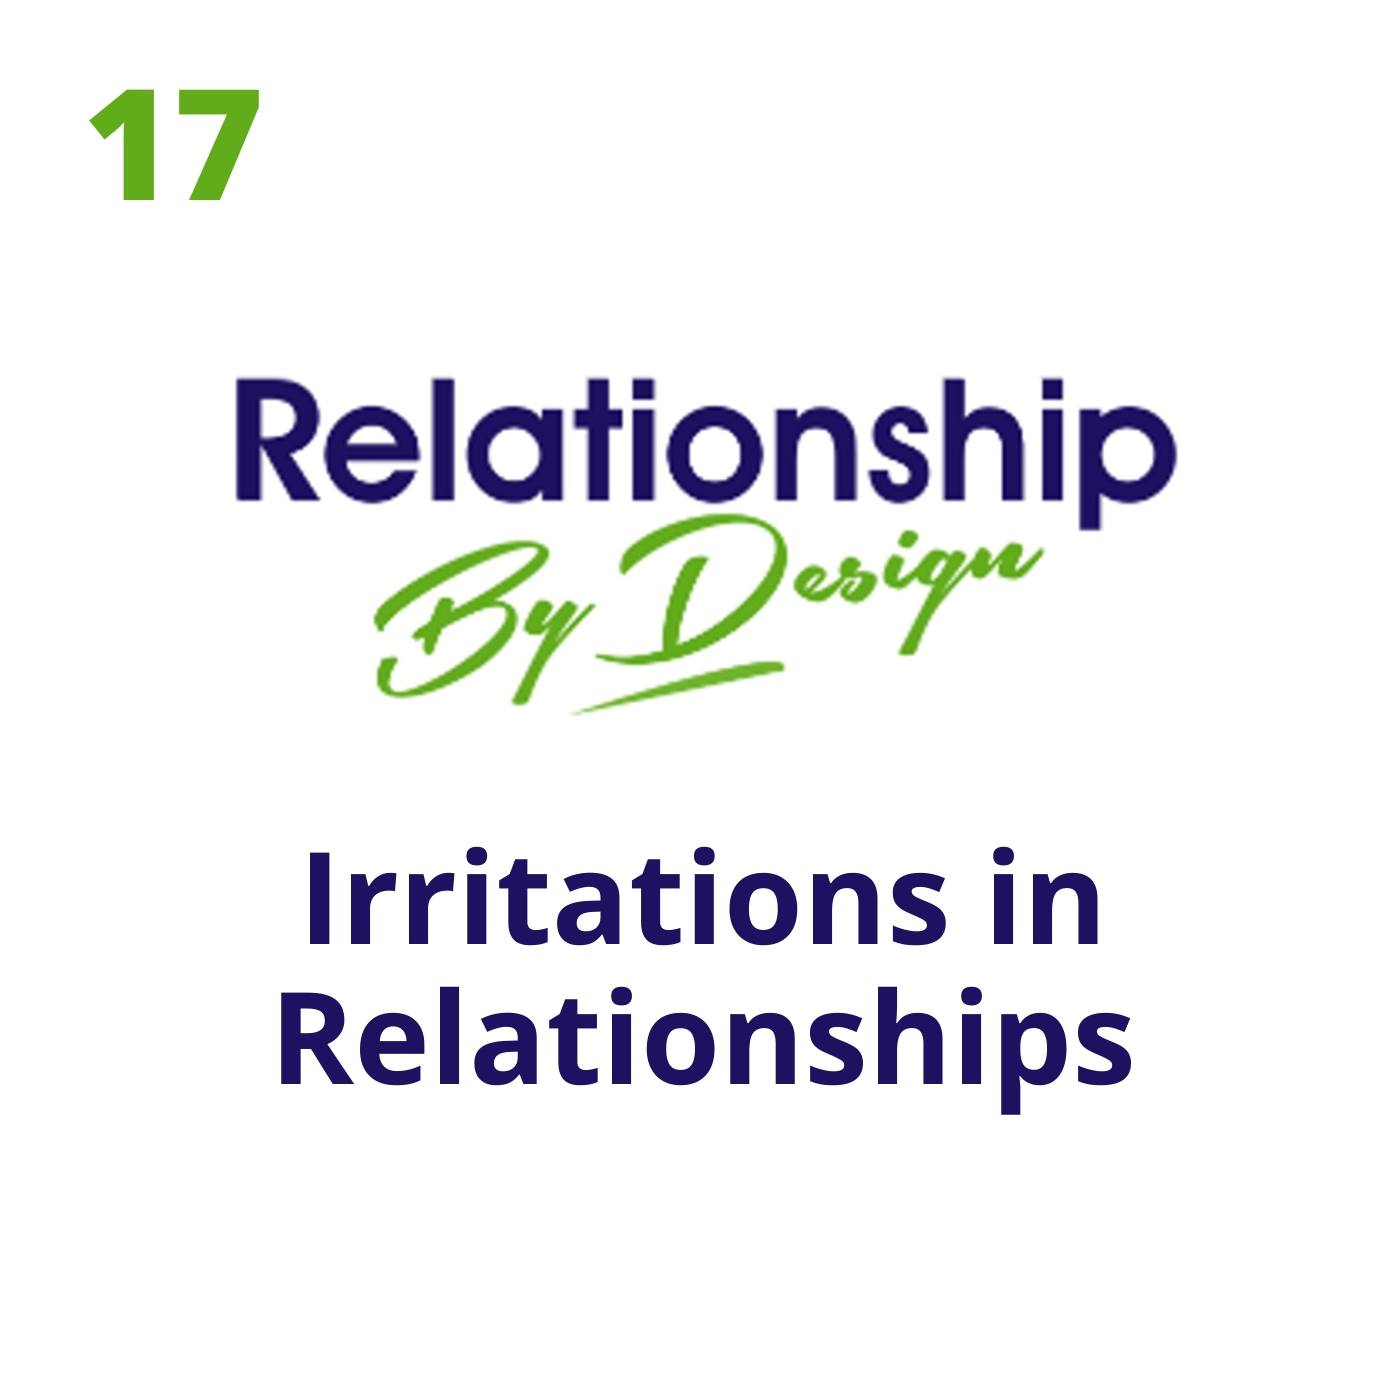 017 Irritations in Relationships